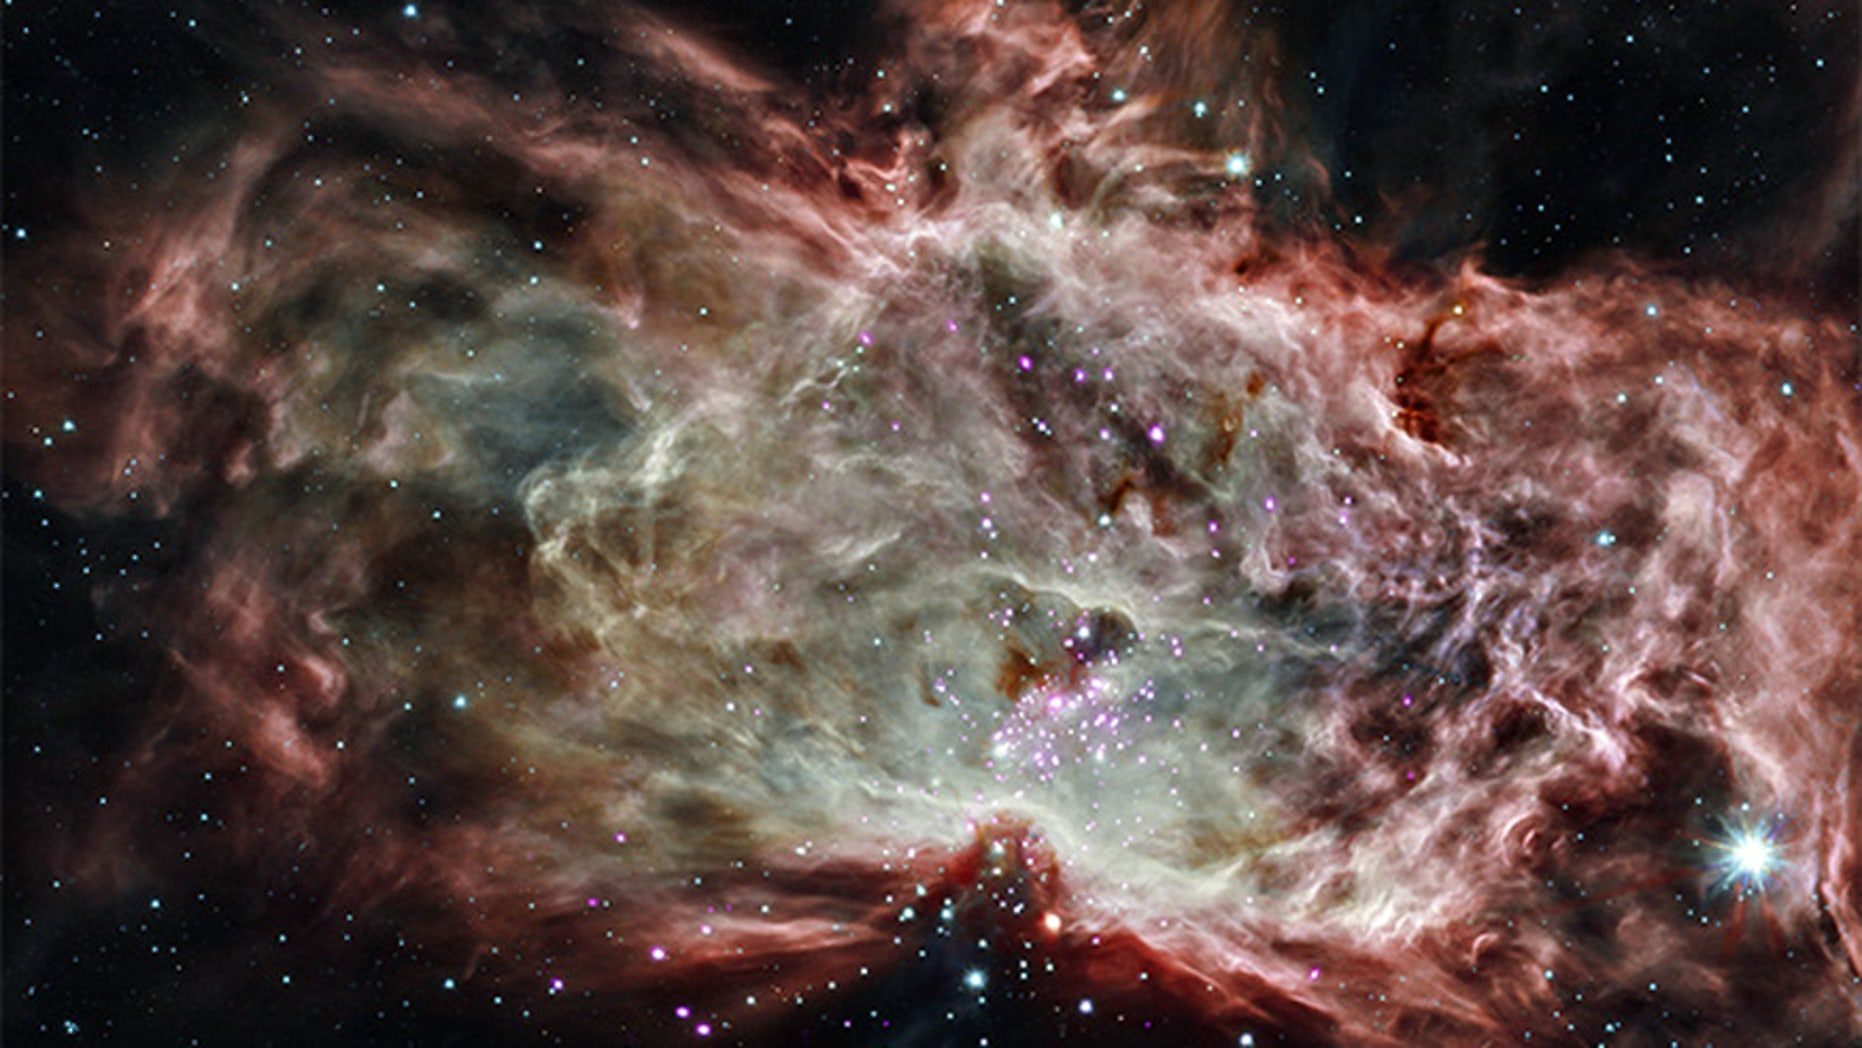 NGC 2024 is a star cluster found in the center of the Flame Nebula, approximately 1,400 light-years from Earth. This observation combines X-ray and infrared data from NASA's Chandra and Spitzer space telescopes, respectively.